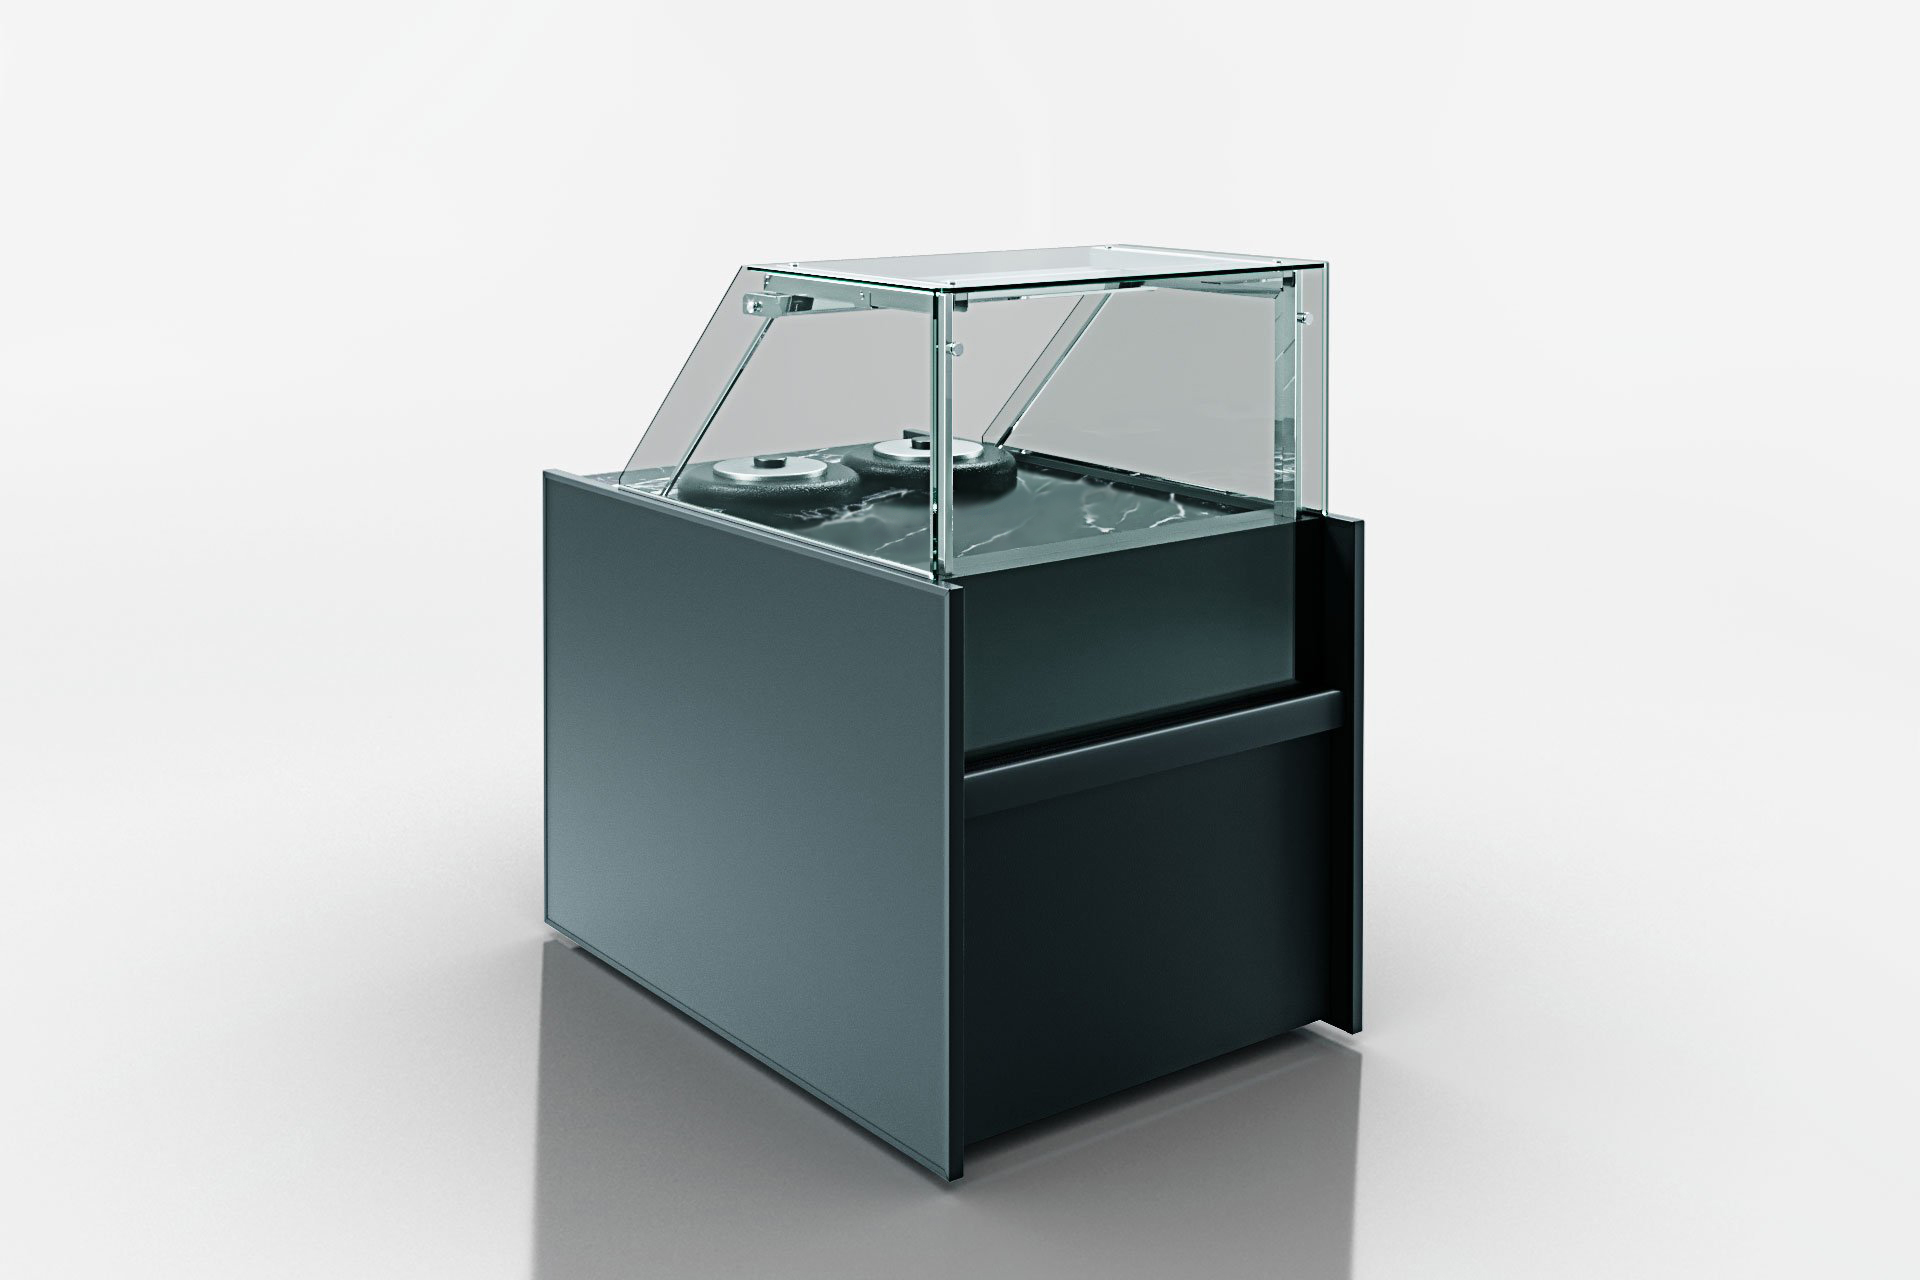 Refrigerated counters Missouri NC 120 tureen 2 PP 130